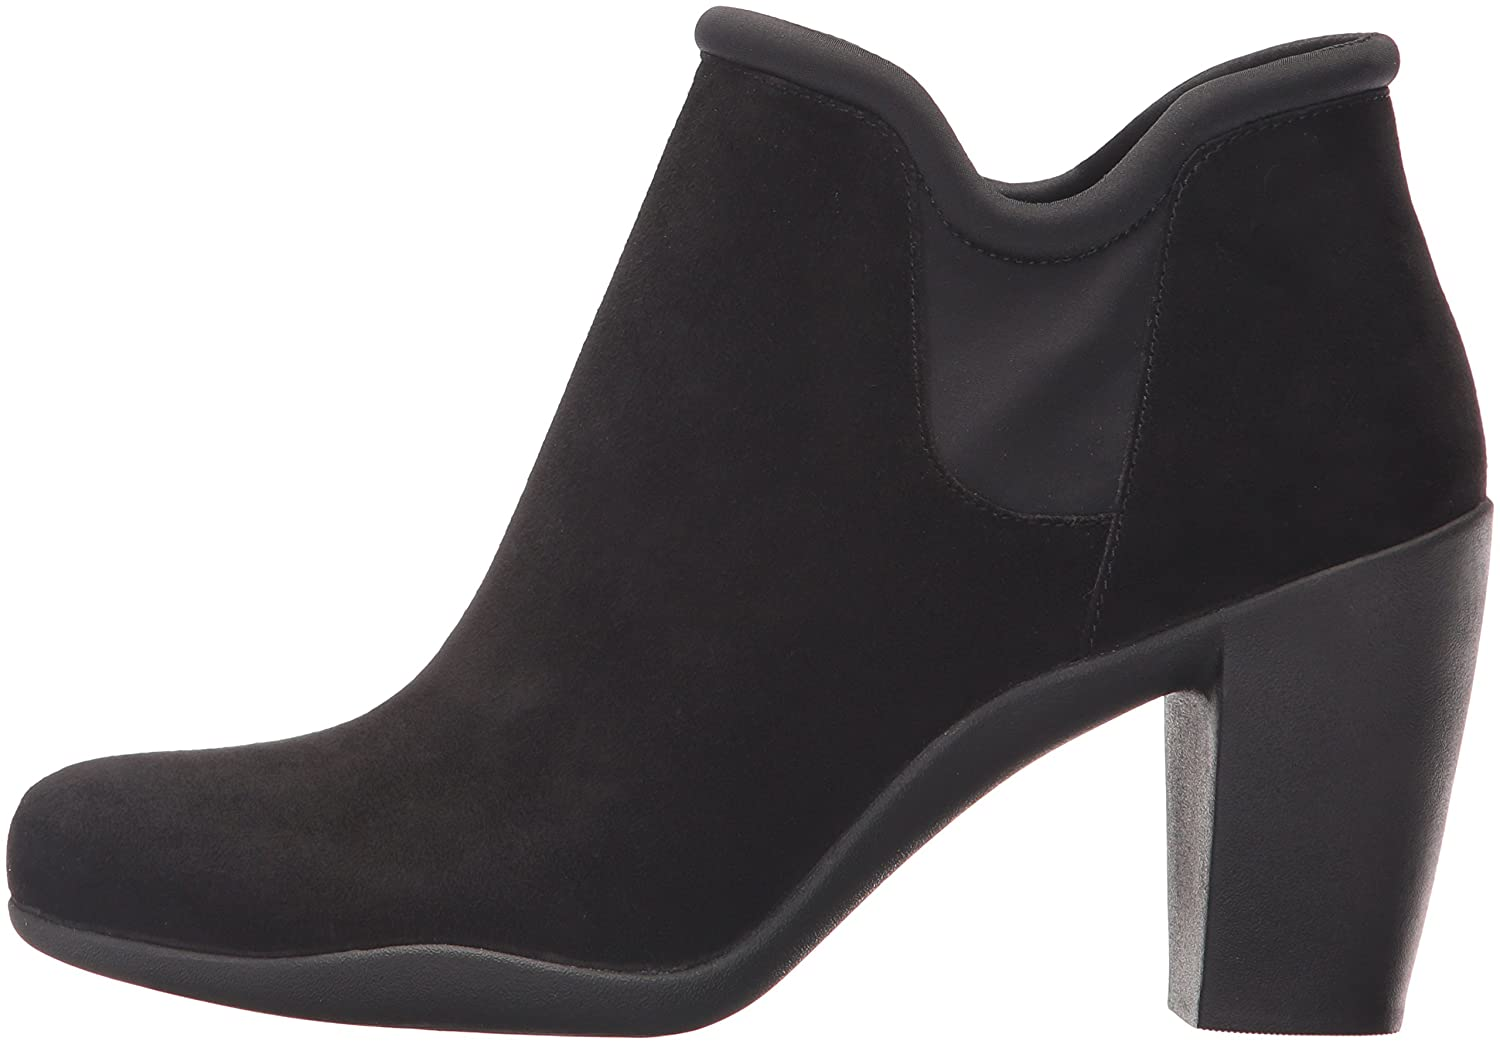 CLARKS Women's Adya Bella W Ankle Bootie B01MR8BS1O 6 W Bella US|Black Suede ac39c3